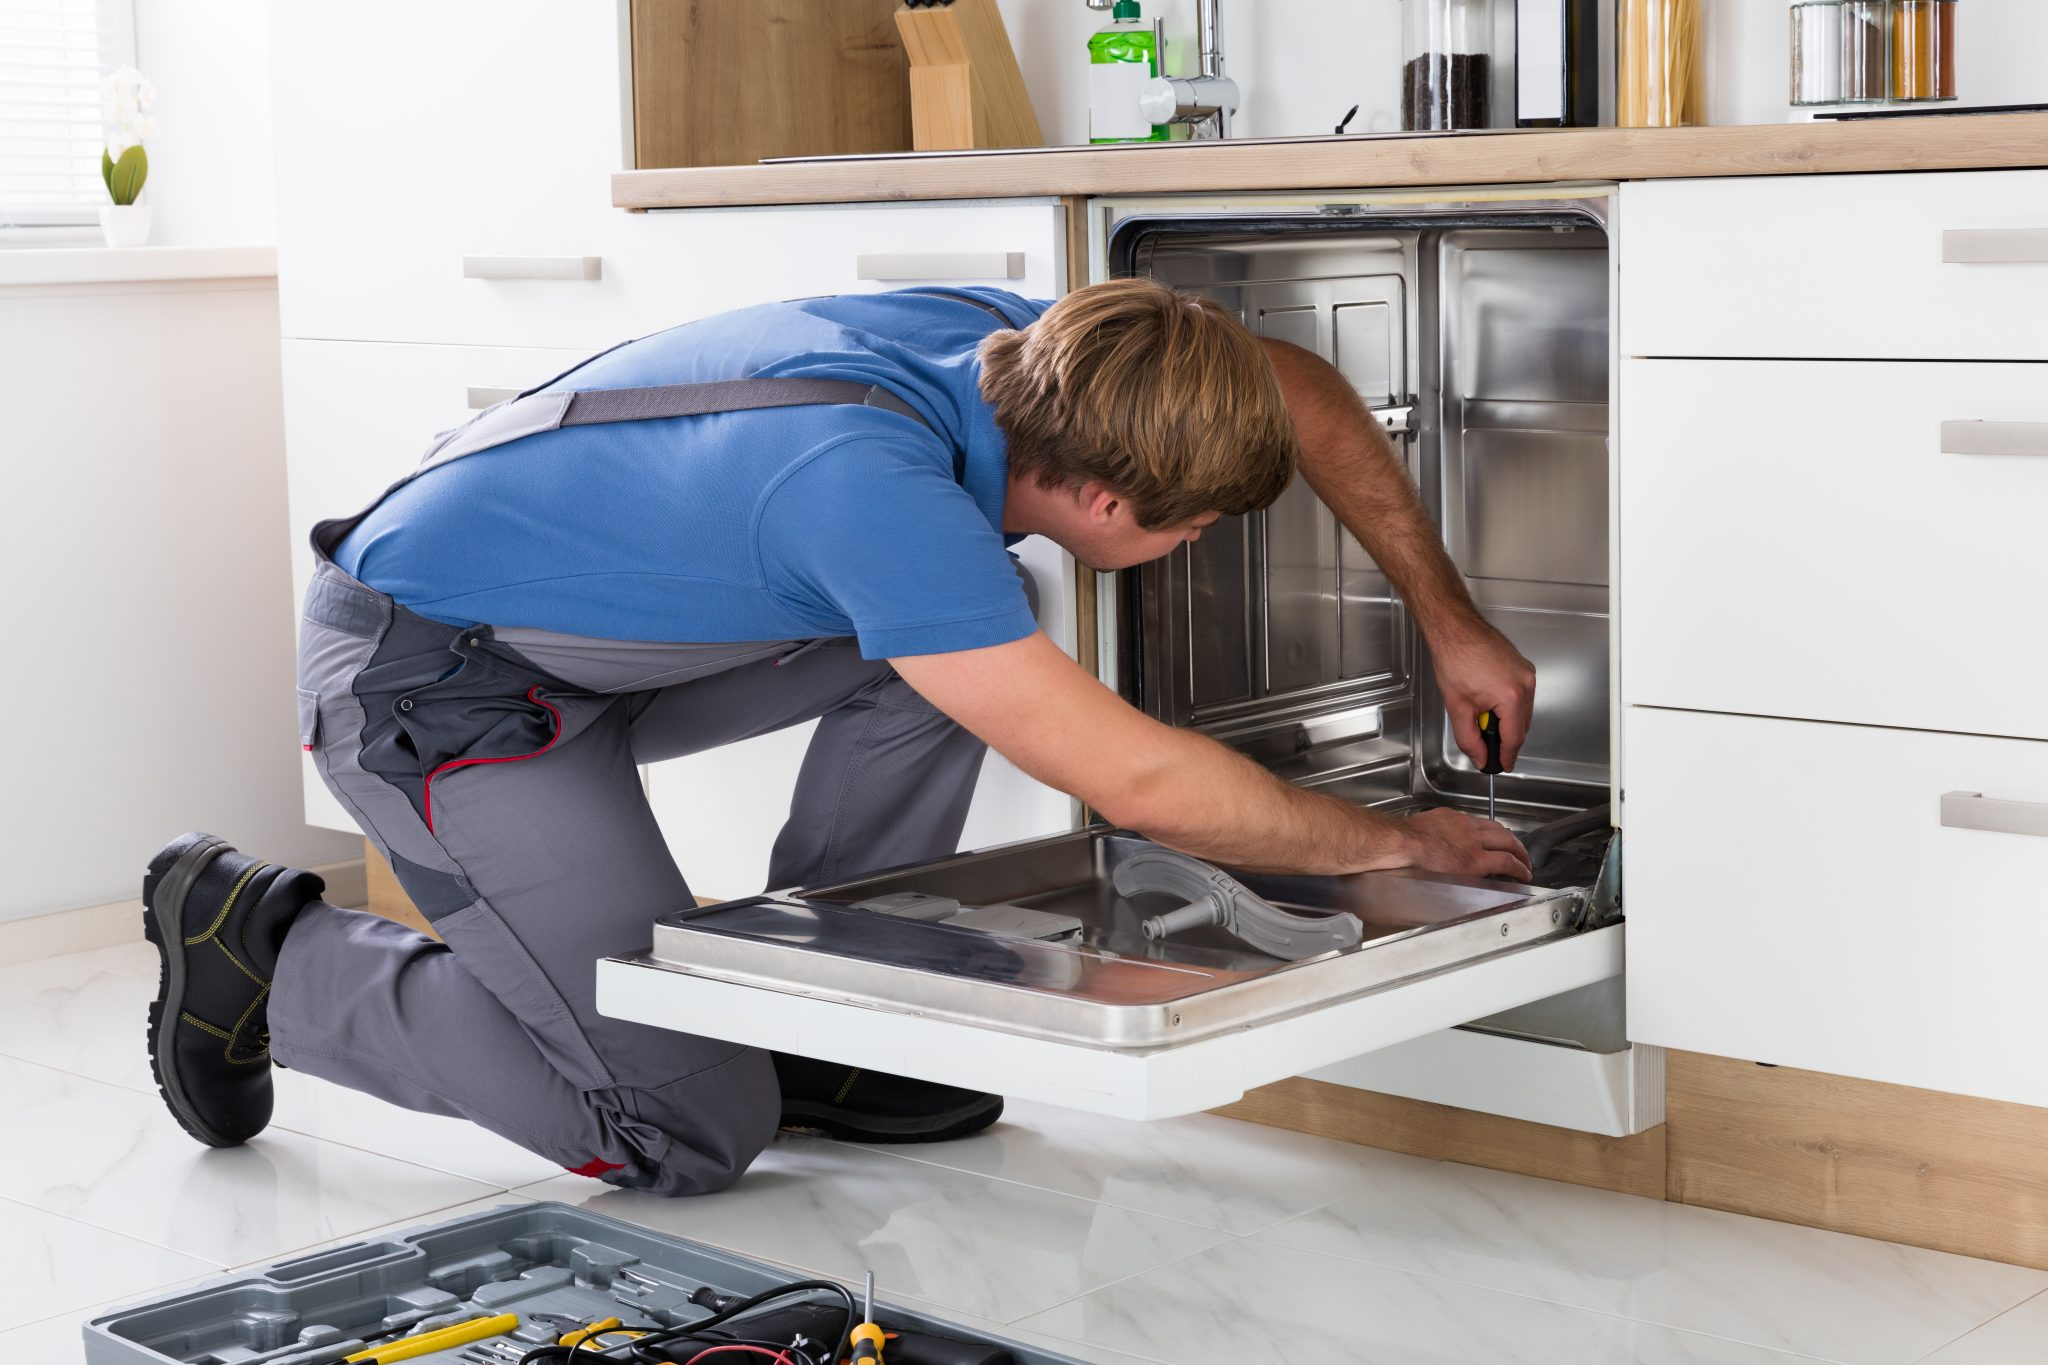 How to Fix a Dishwasher That Is Not Draining